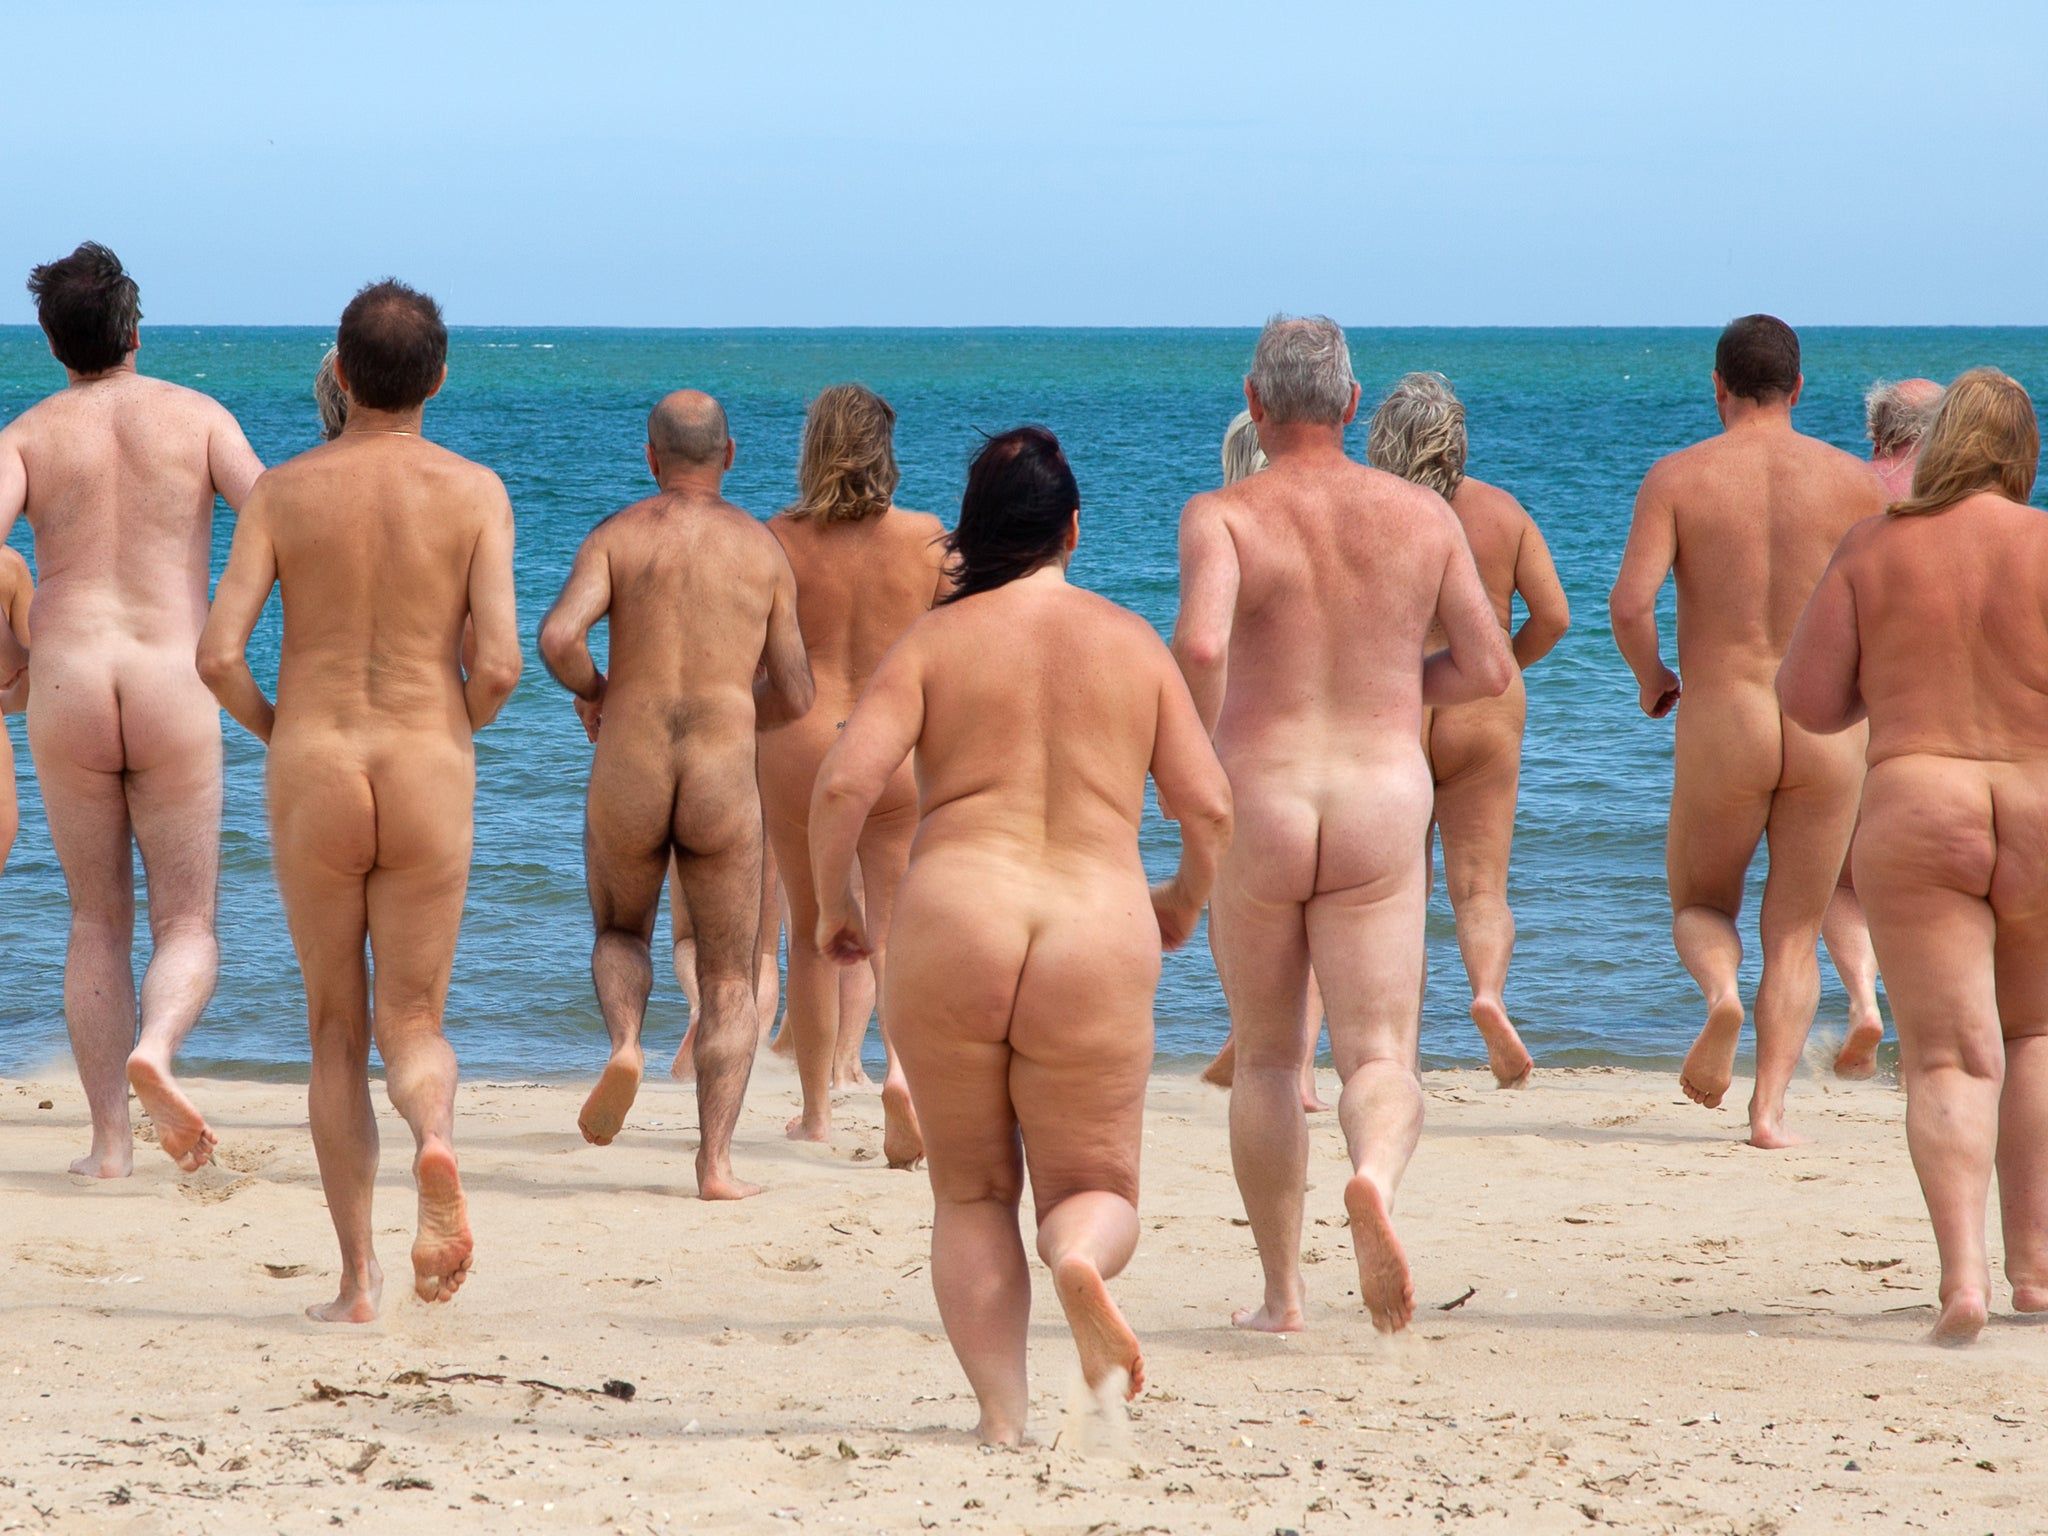 Ireland is getting its first nude beach